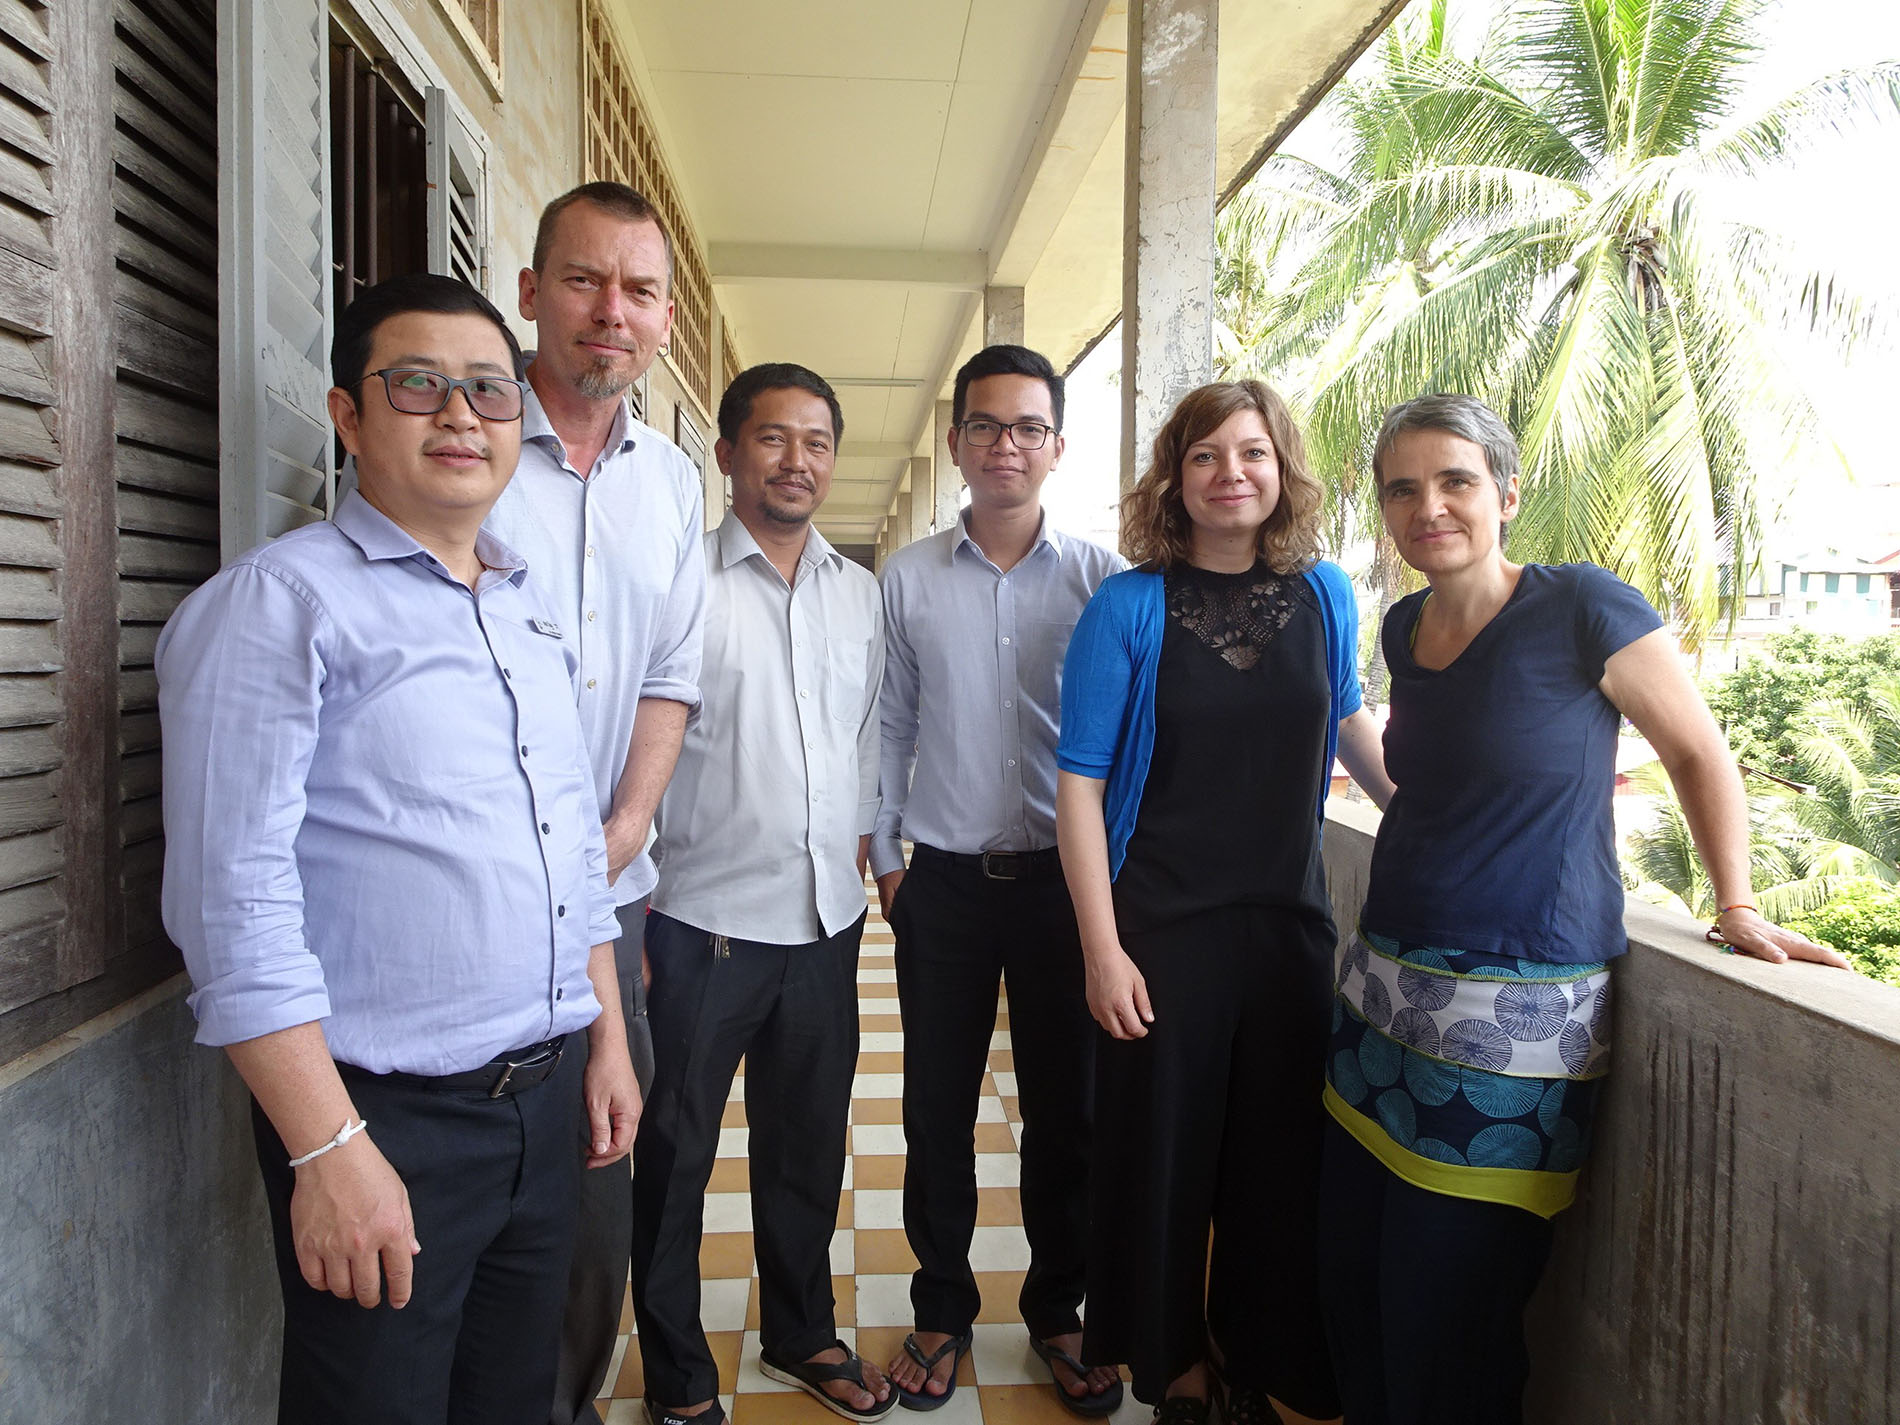 The Memory Work team at TSGM in Phnom Penh, January 2019: Visoth Chhay, Jochen Voit, Samnang Ny, Pheaktra Song, Judith Mayer, Barbara Thimm (f.l.t.r.)